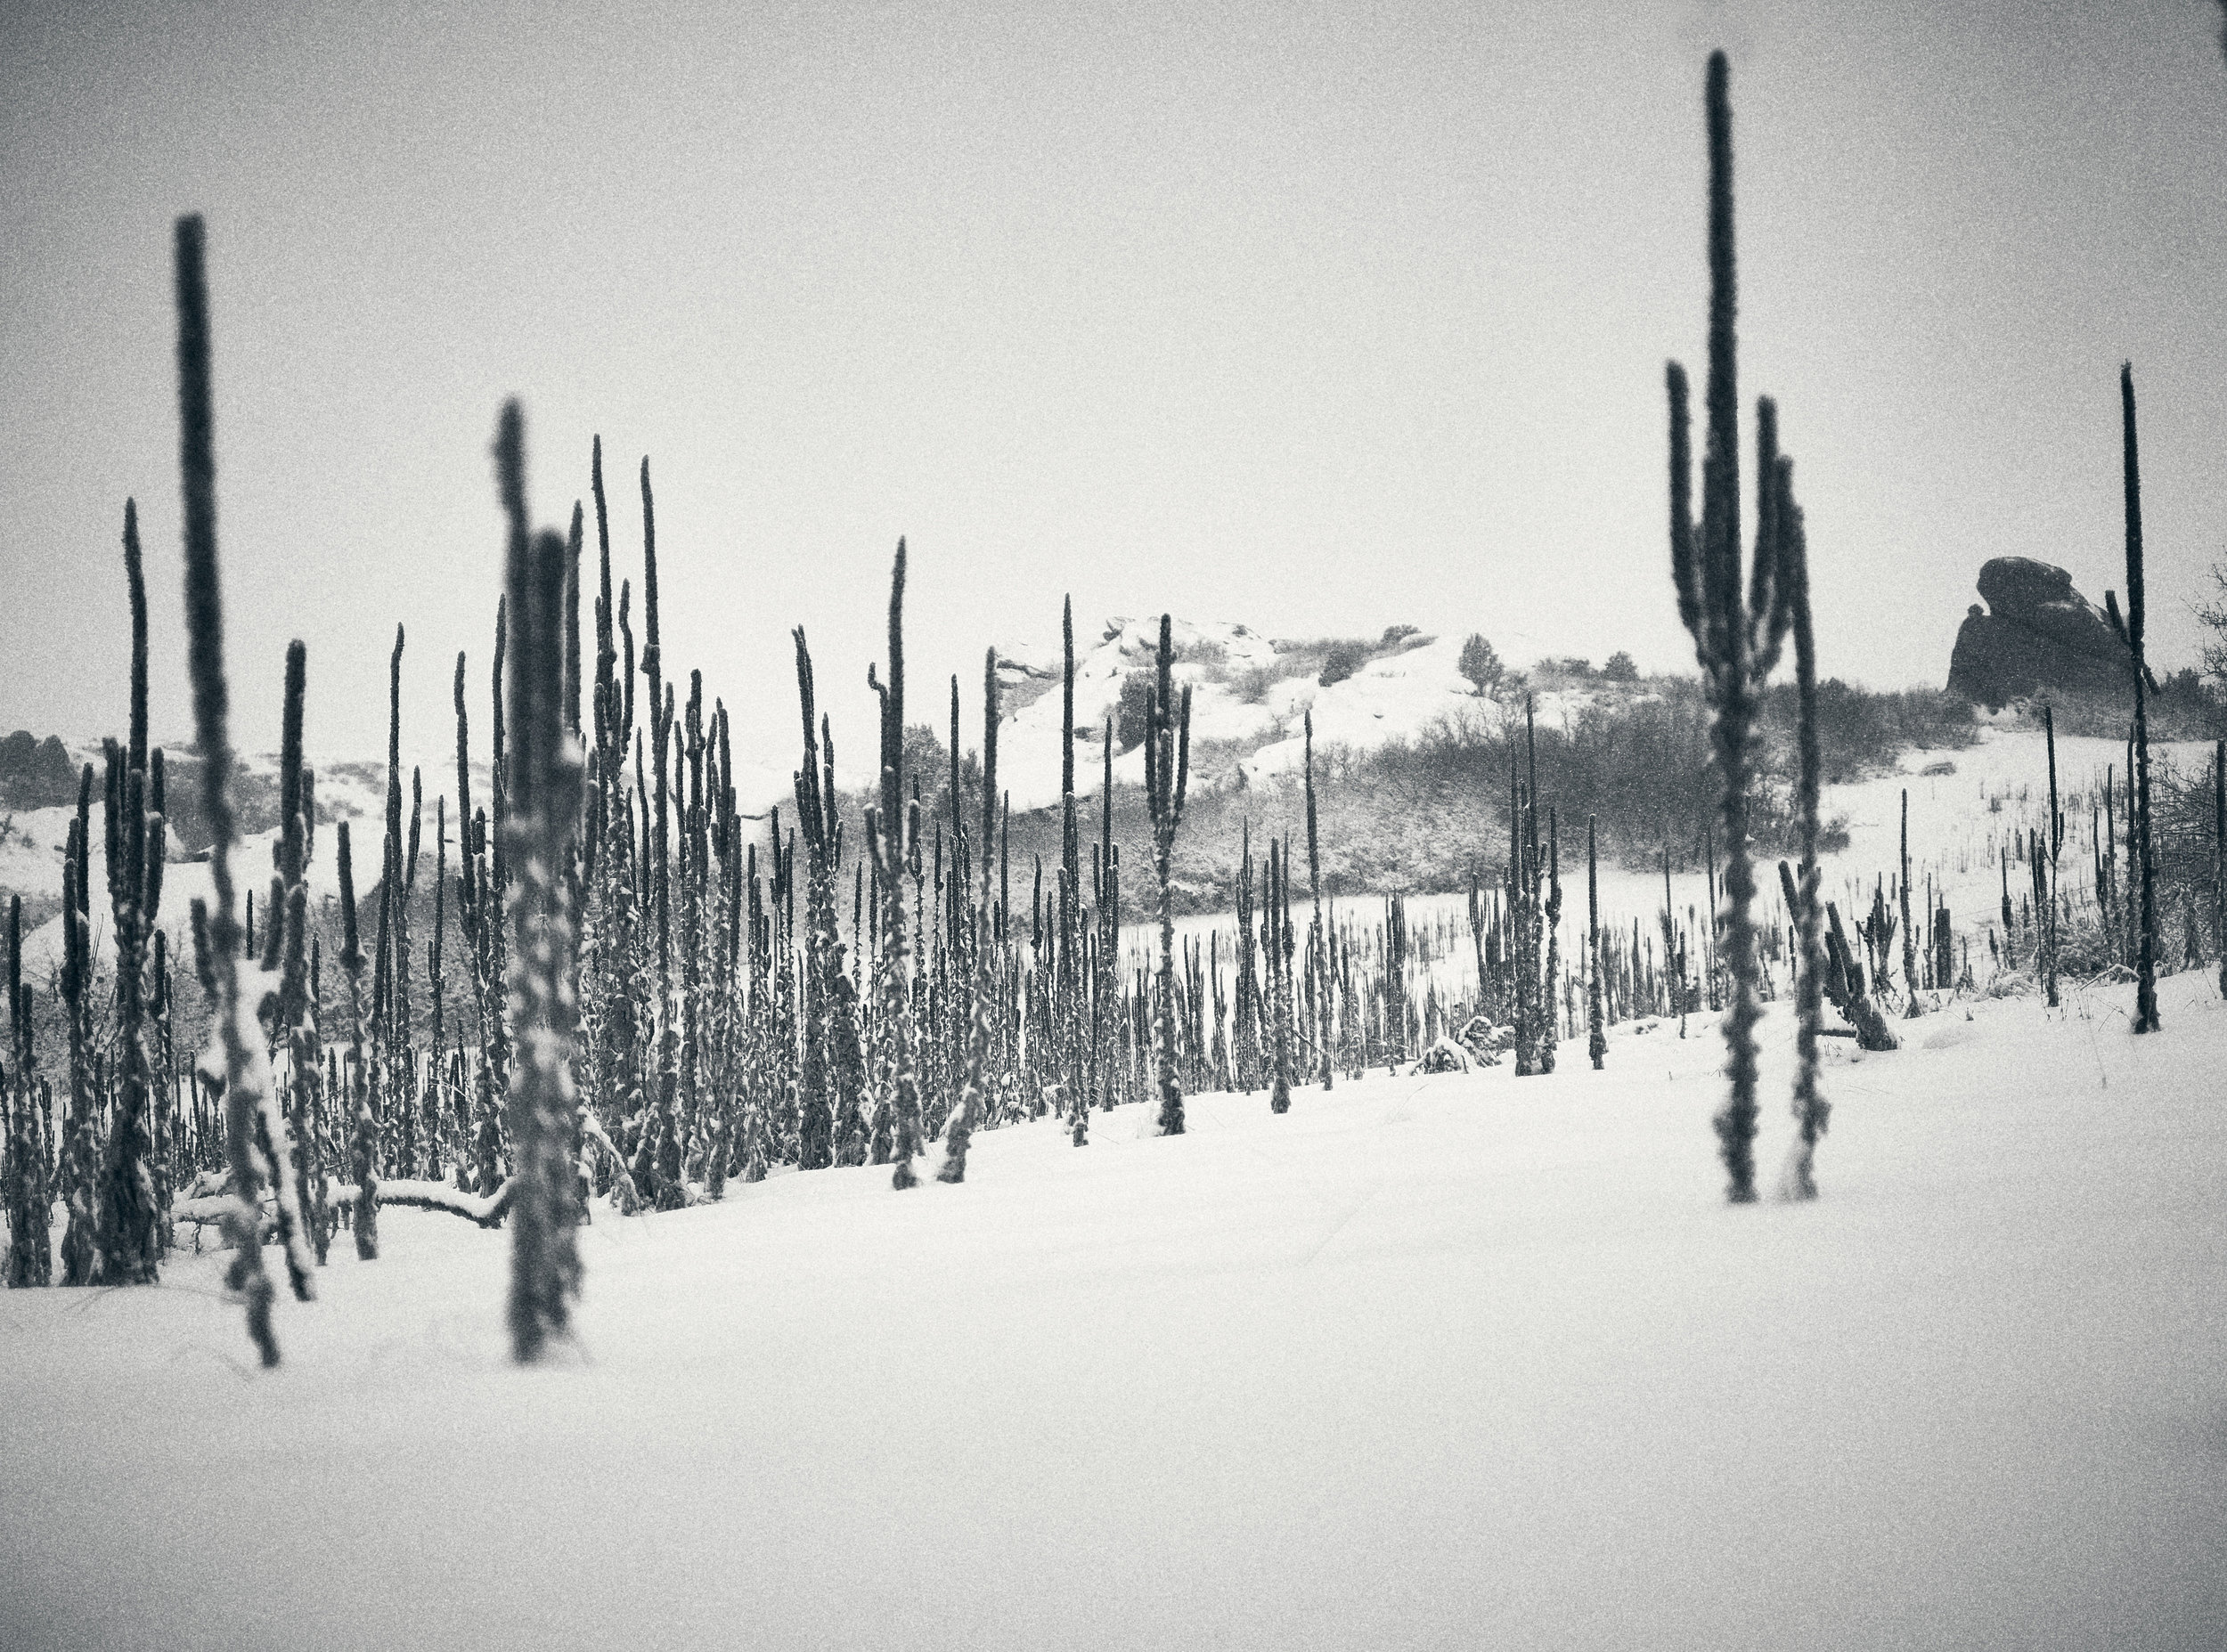 Black and white stalks in snow